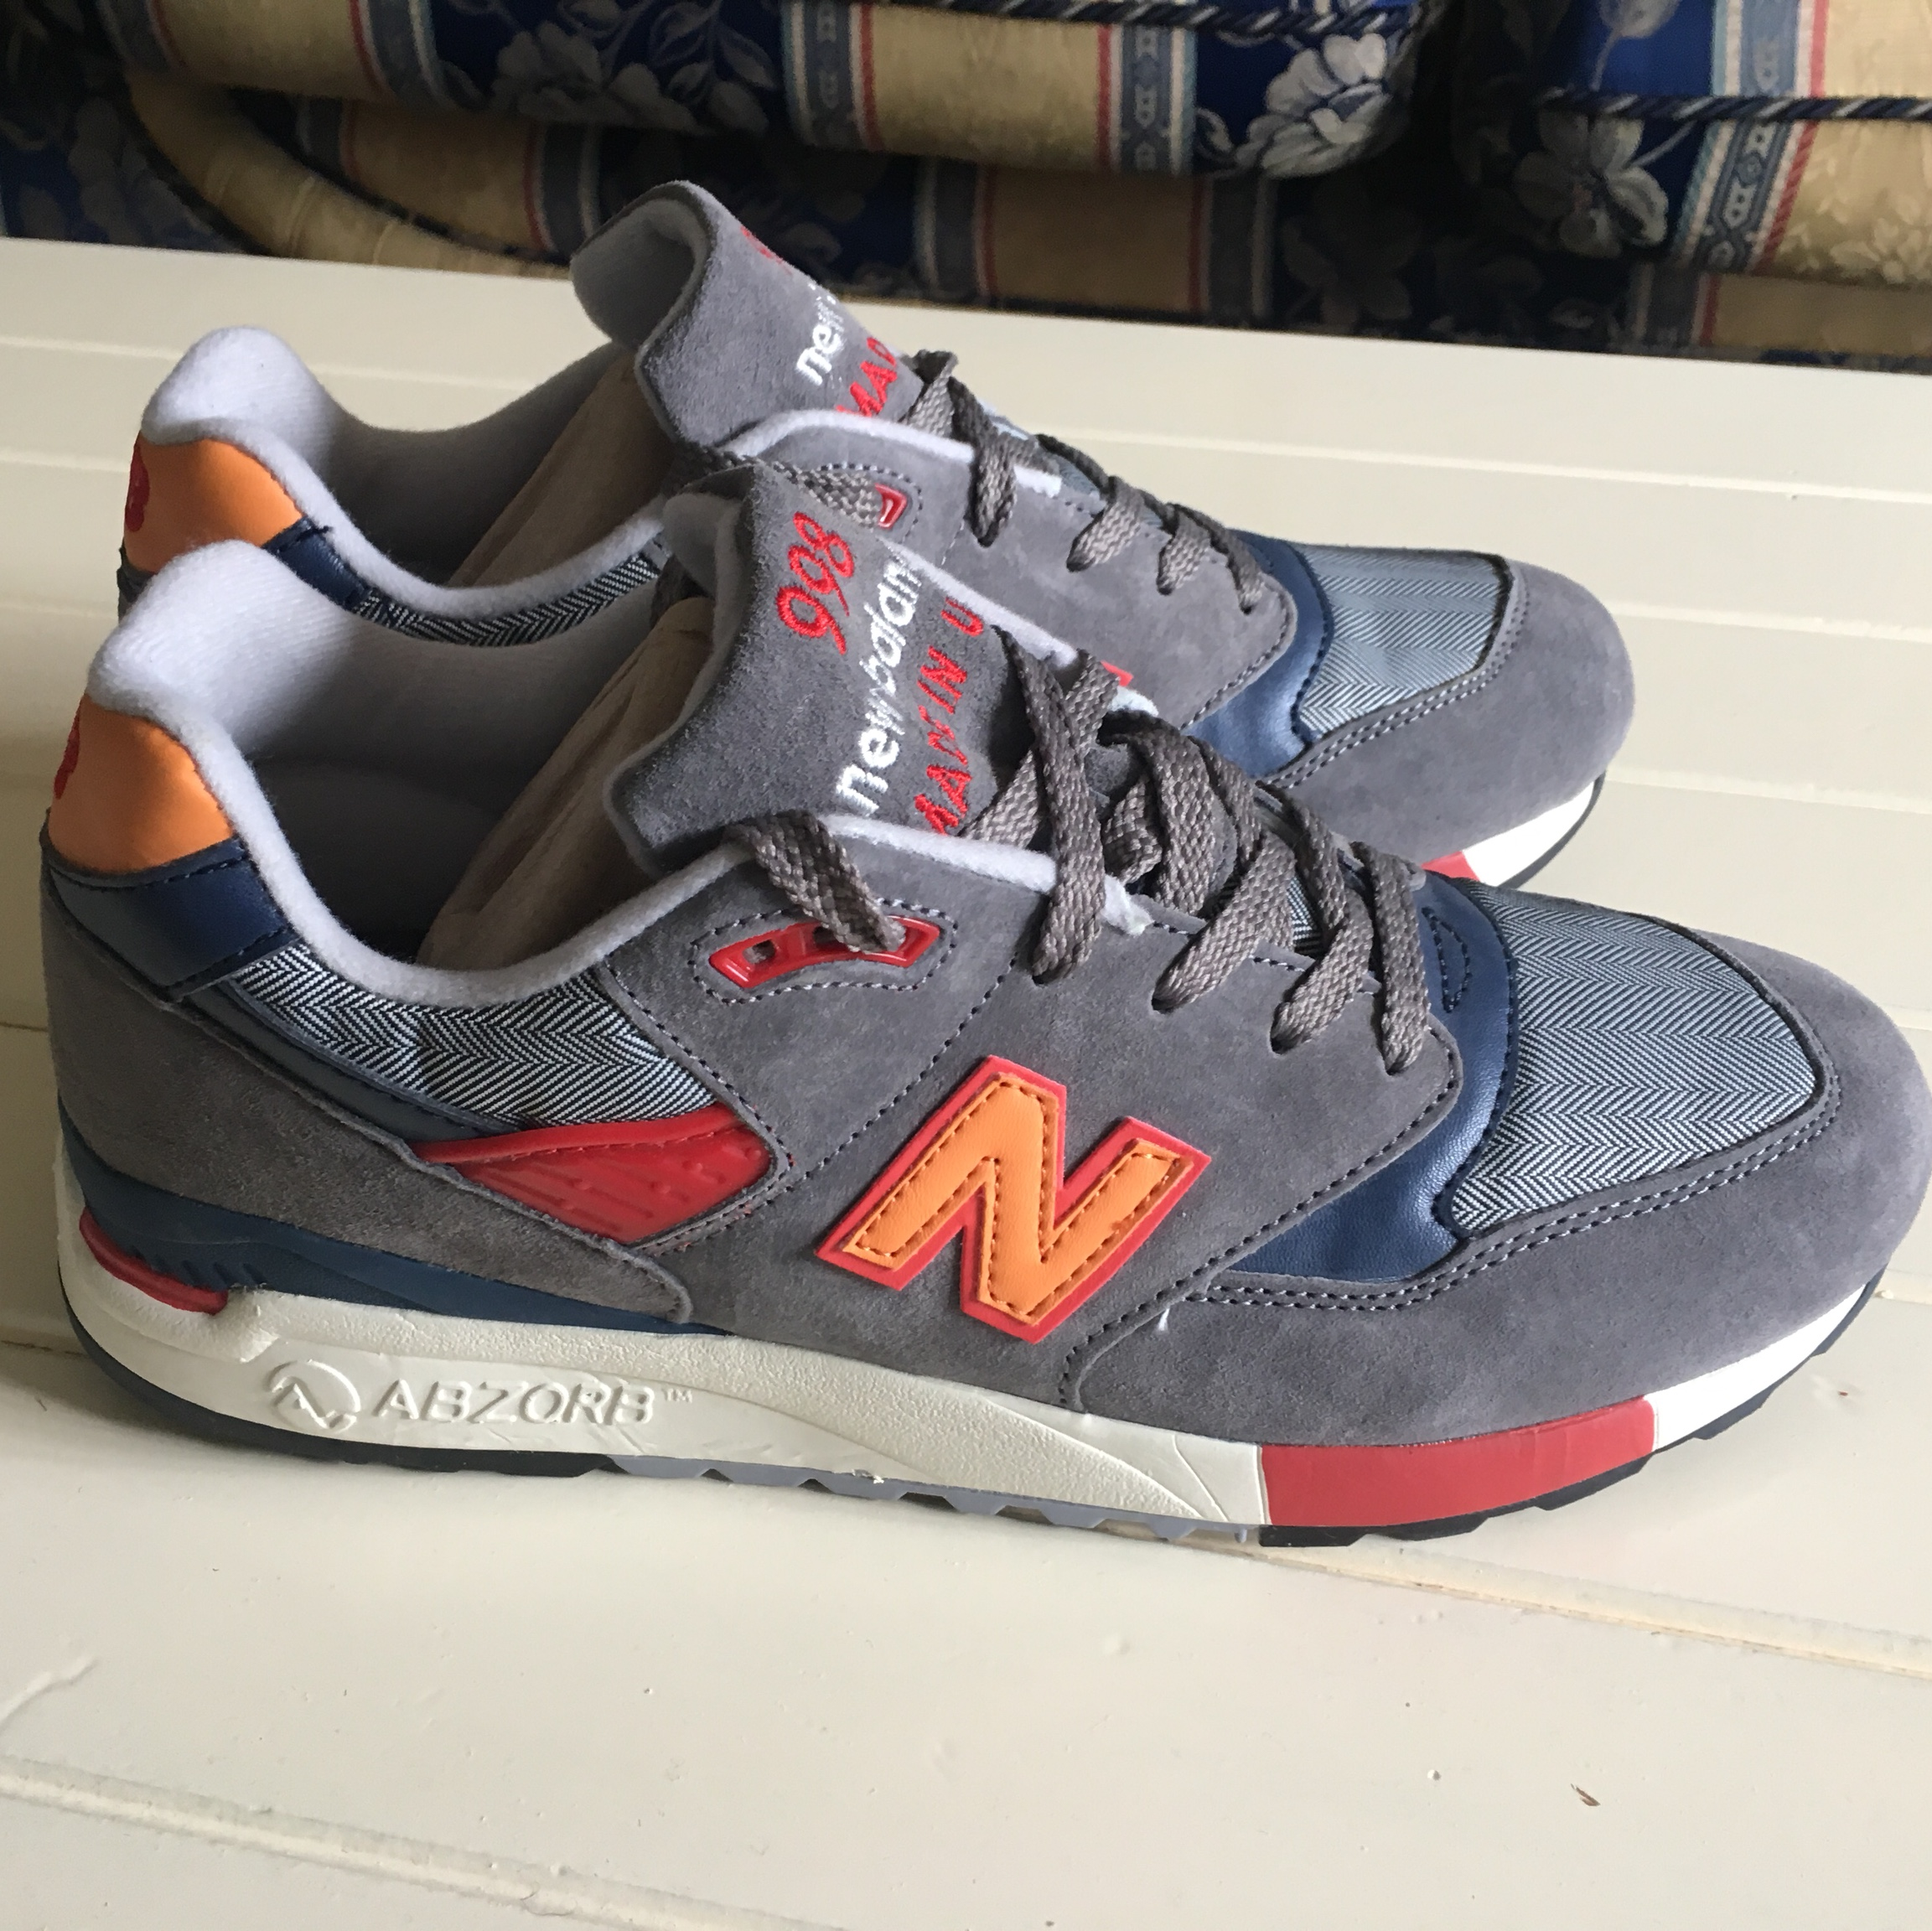 low priced 6d059 3f67a New Balance Abzorb 998 Brand new shoes that are... - Depop